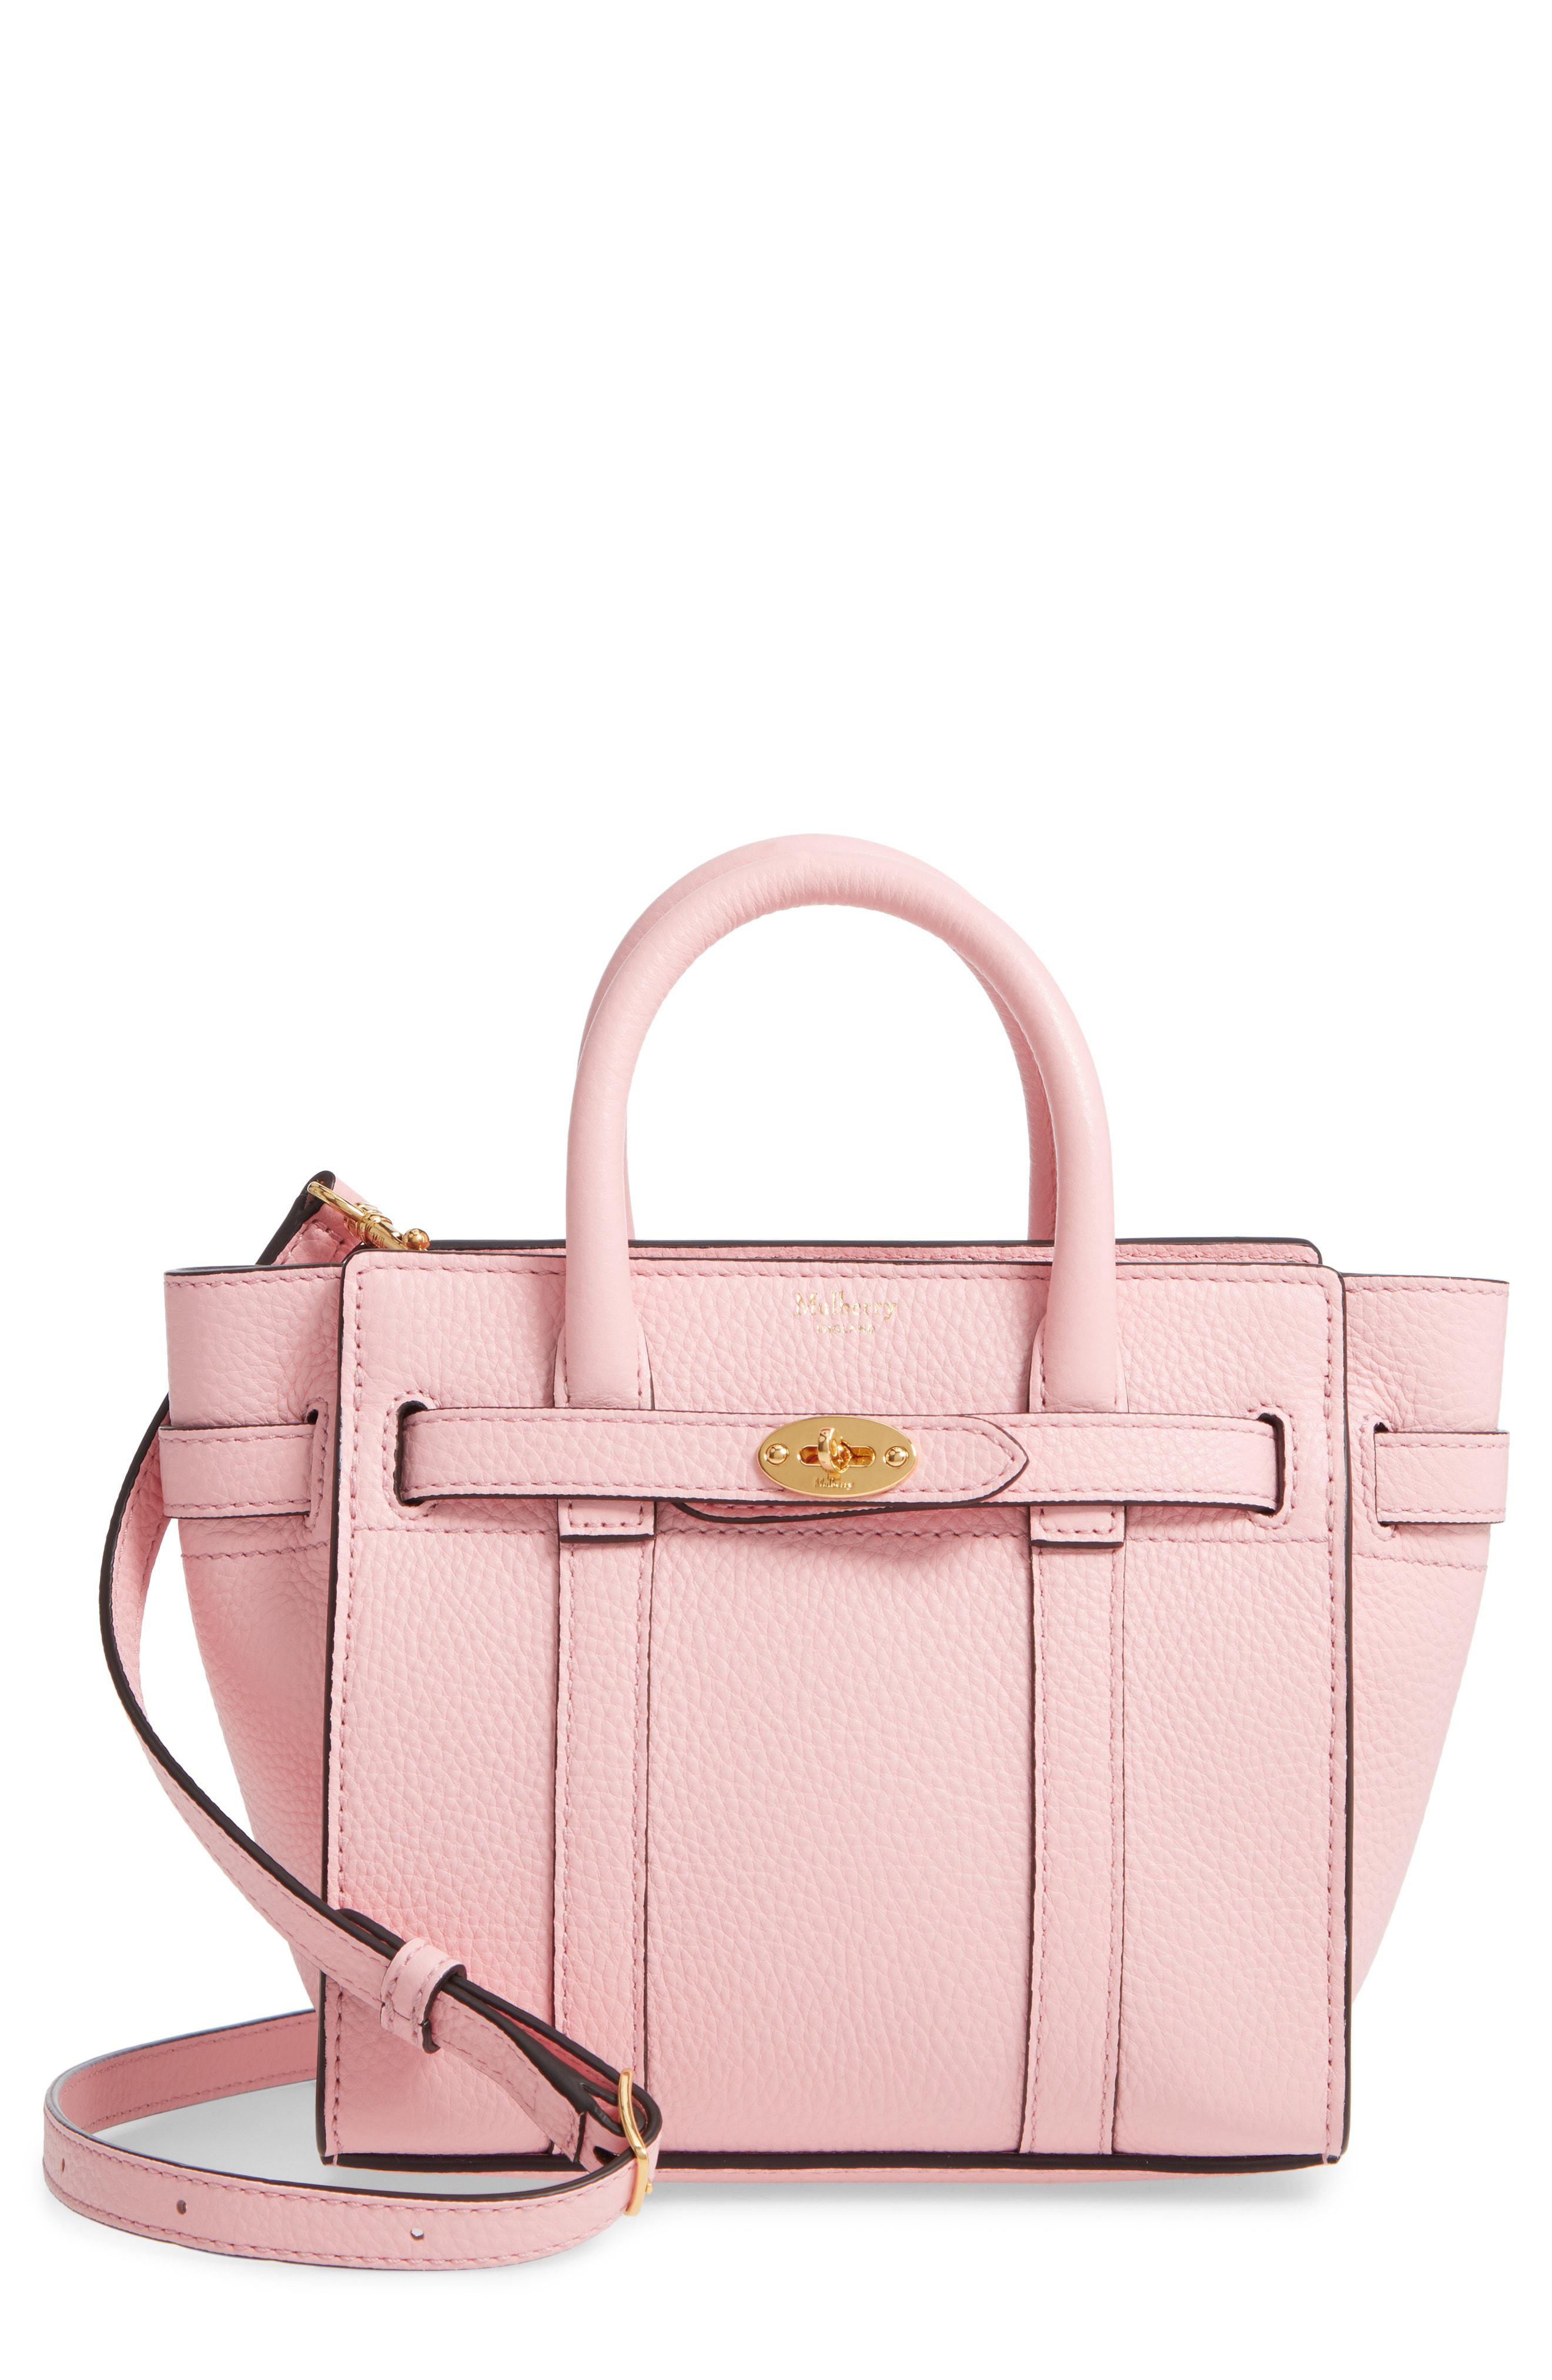 Mulberry. Women s Micro Bayswater Leather Satchel a03dbc124a254